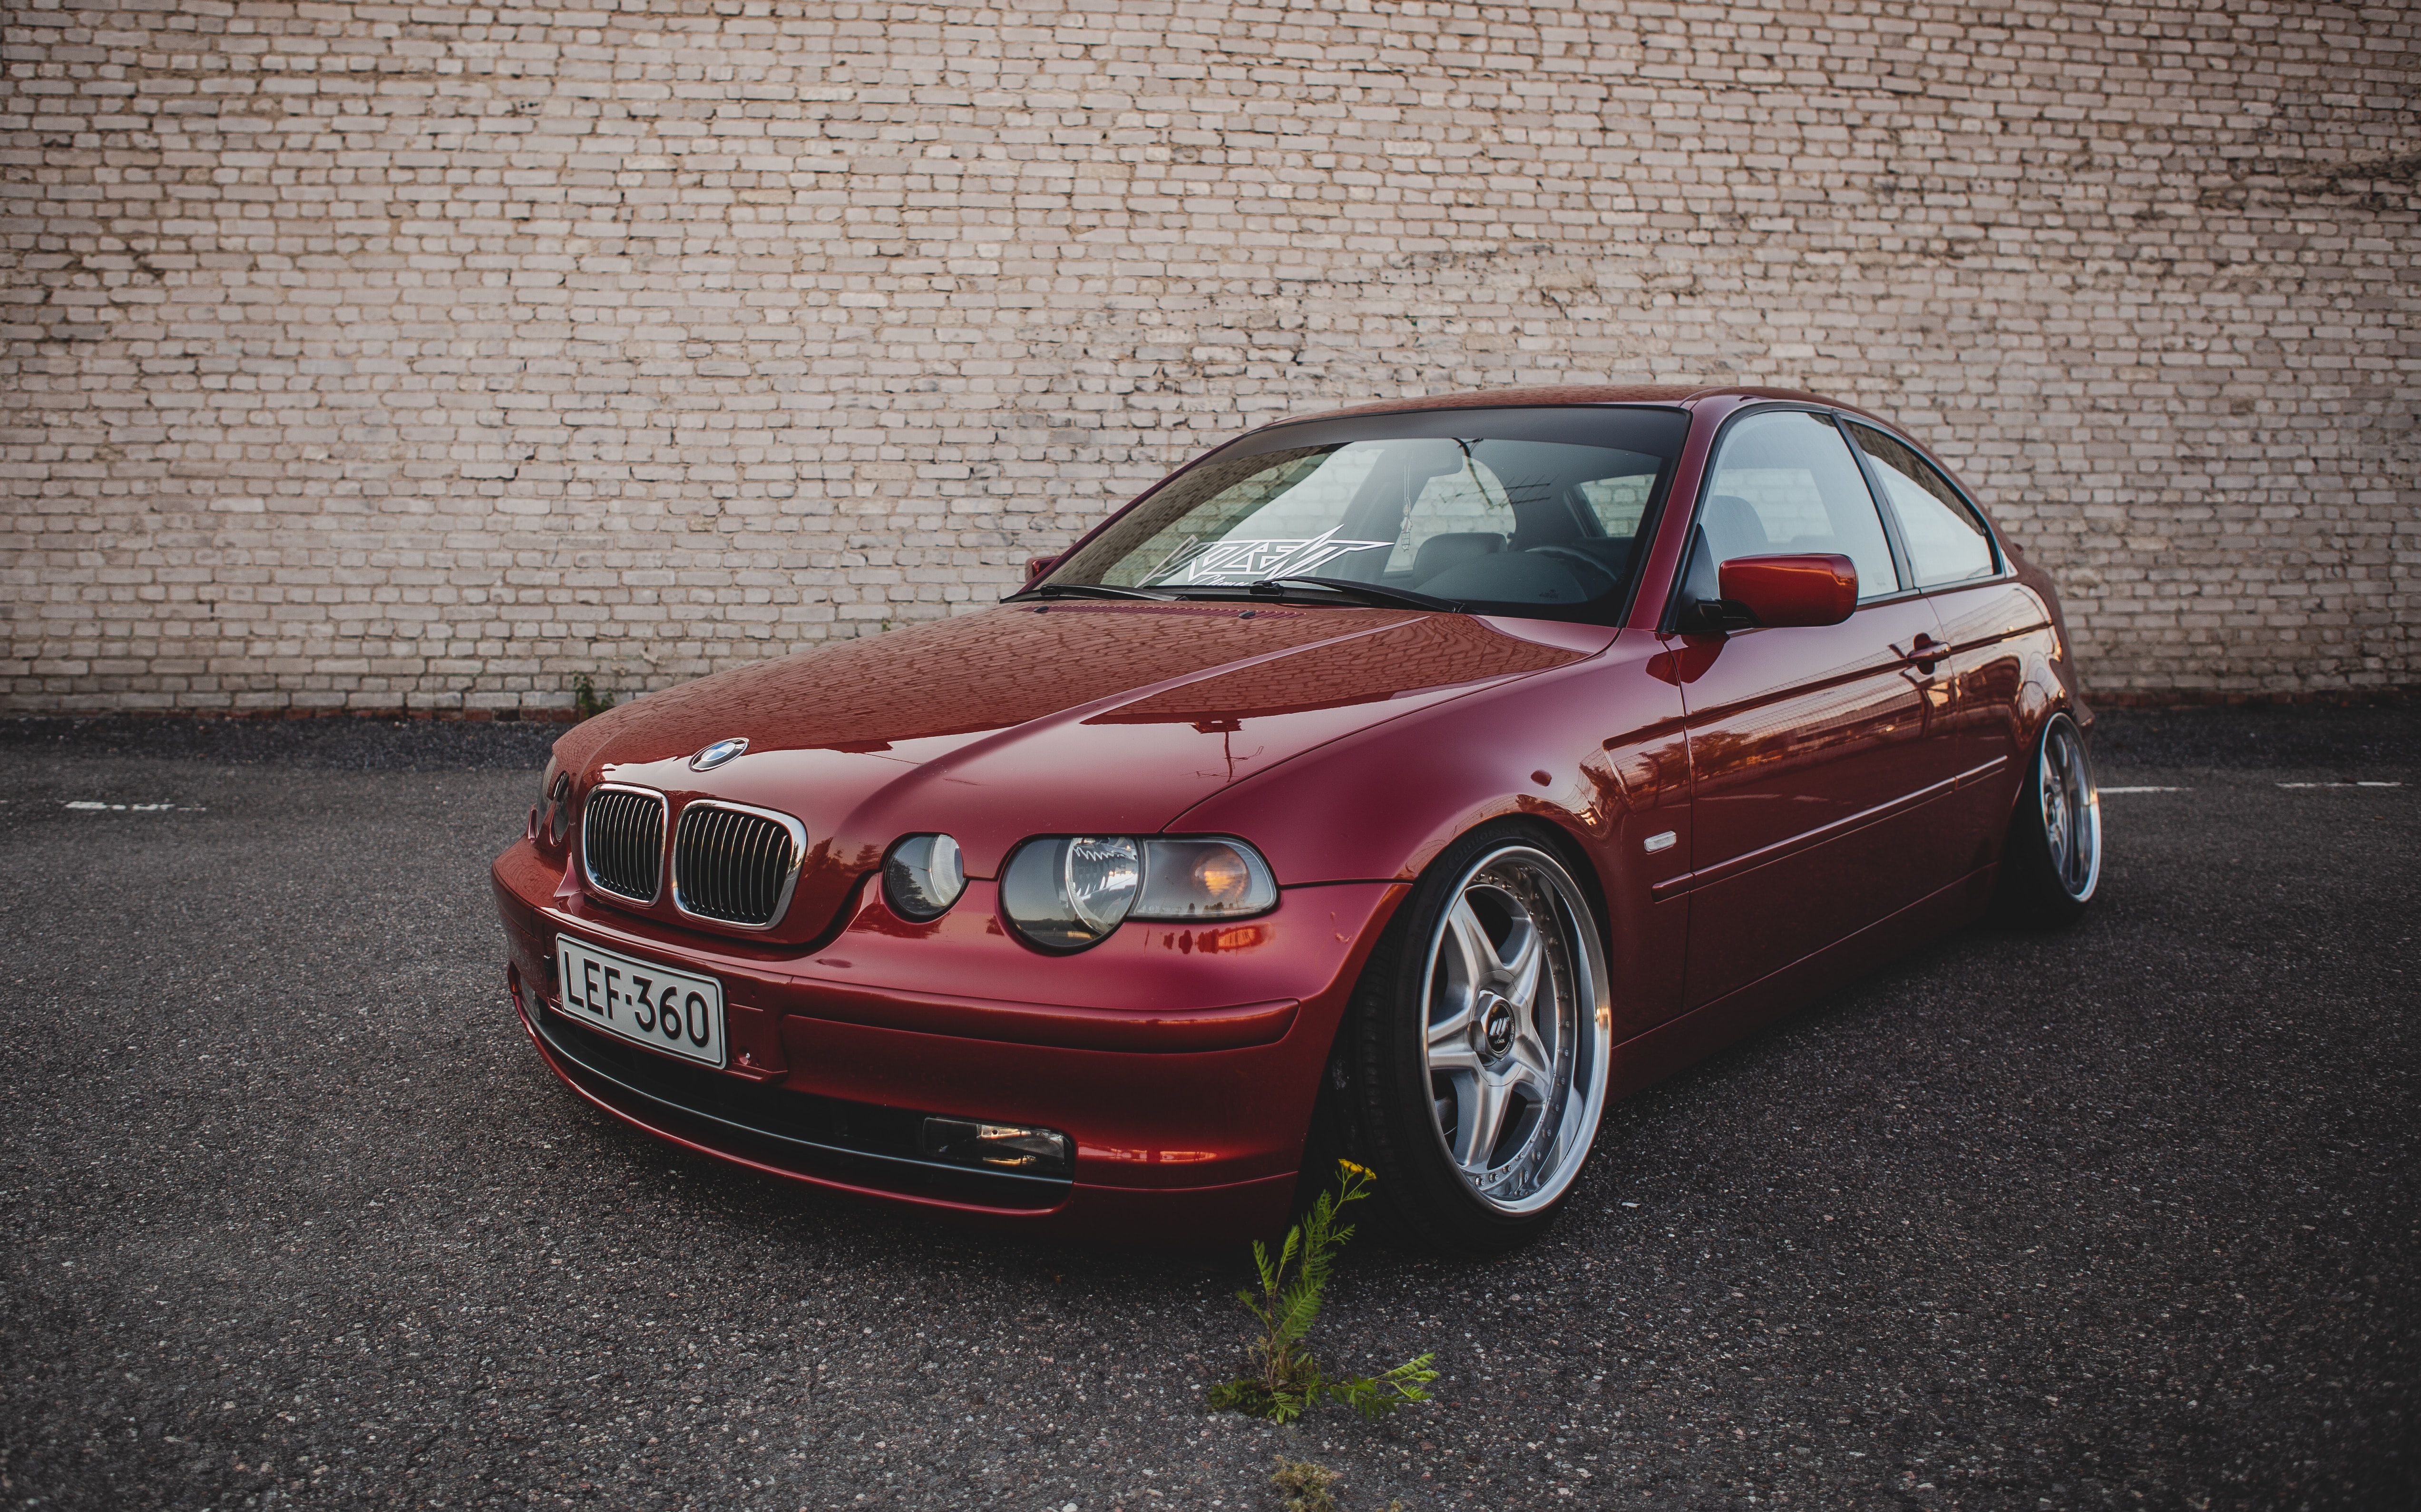 red BMW coupe parked beside brick wall